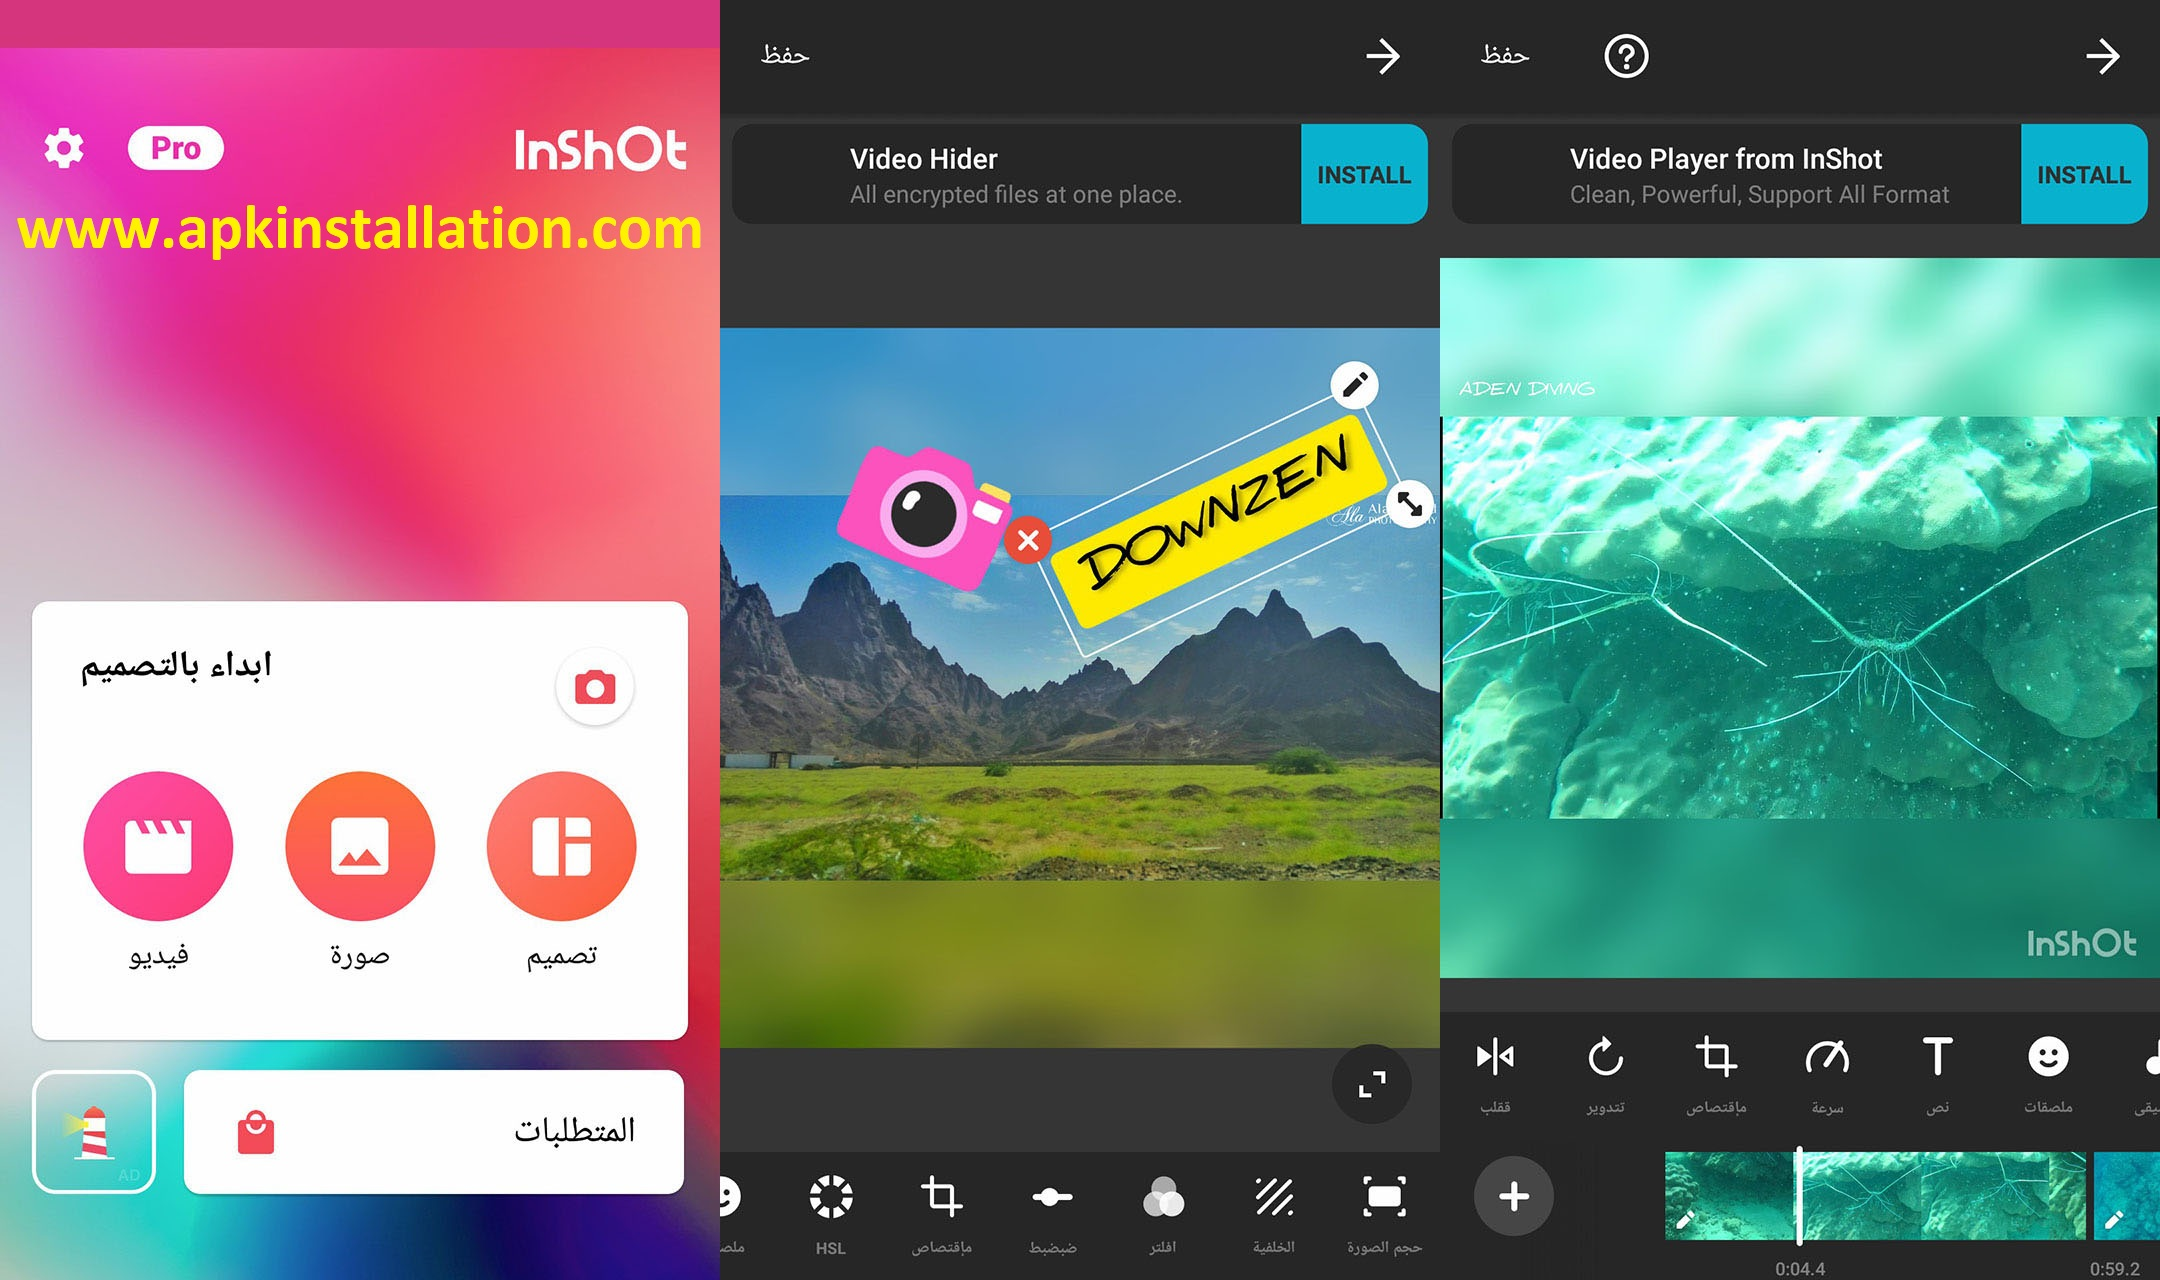 INSHOT PRO MODDED APK FOR ANDROID